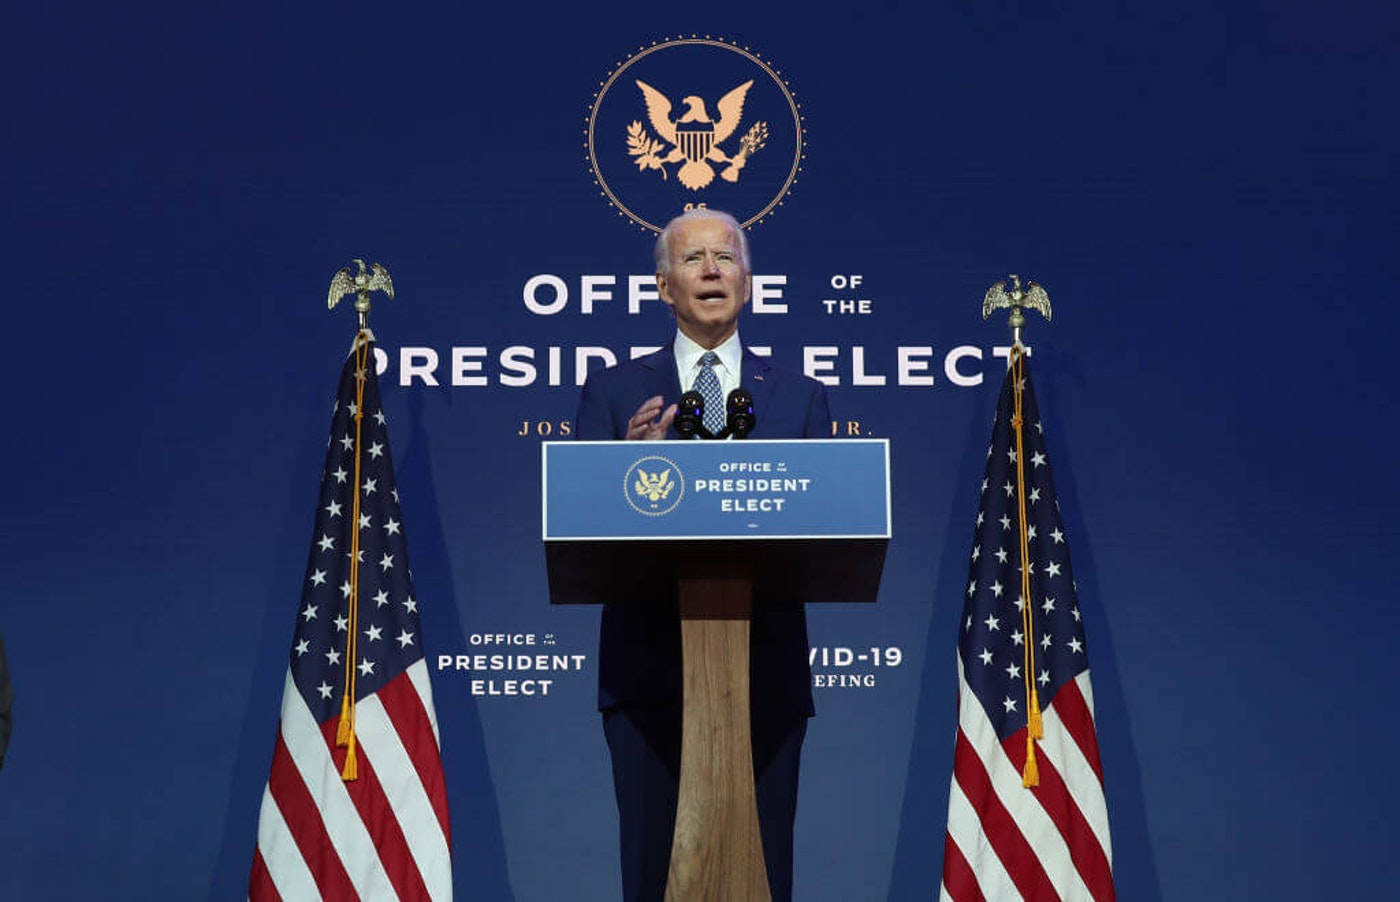 President Joe Biden speaks to the media after receiving a briefing from the transition COVID-19 advisory board on Nov. 9 at the Queen Theater in Wilmington, Delaware. Biden spoke about how his administration would respond to the coronavirus pandemic. (Photo by Joe Raedle/Getty Images)